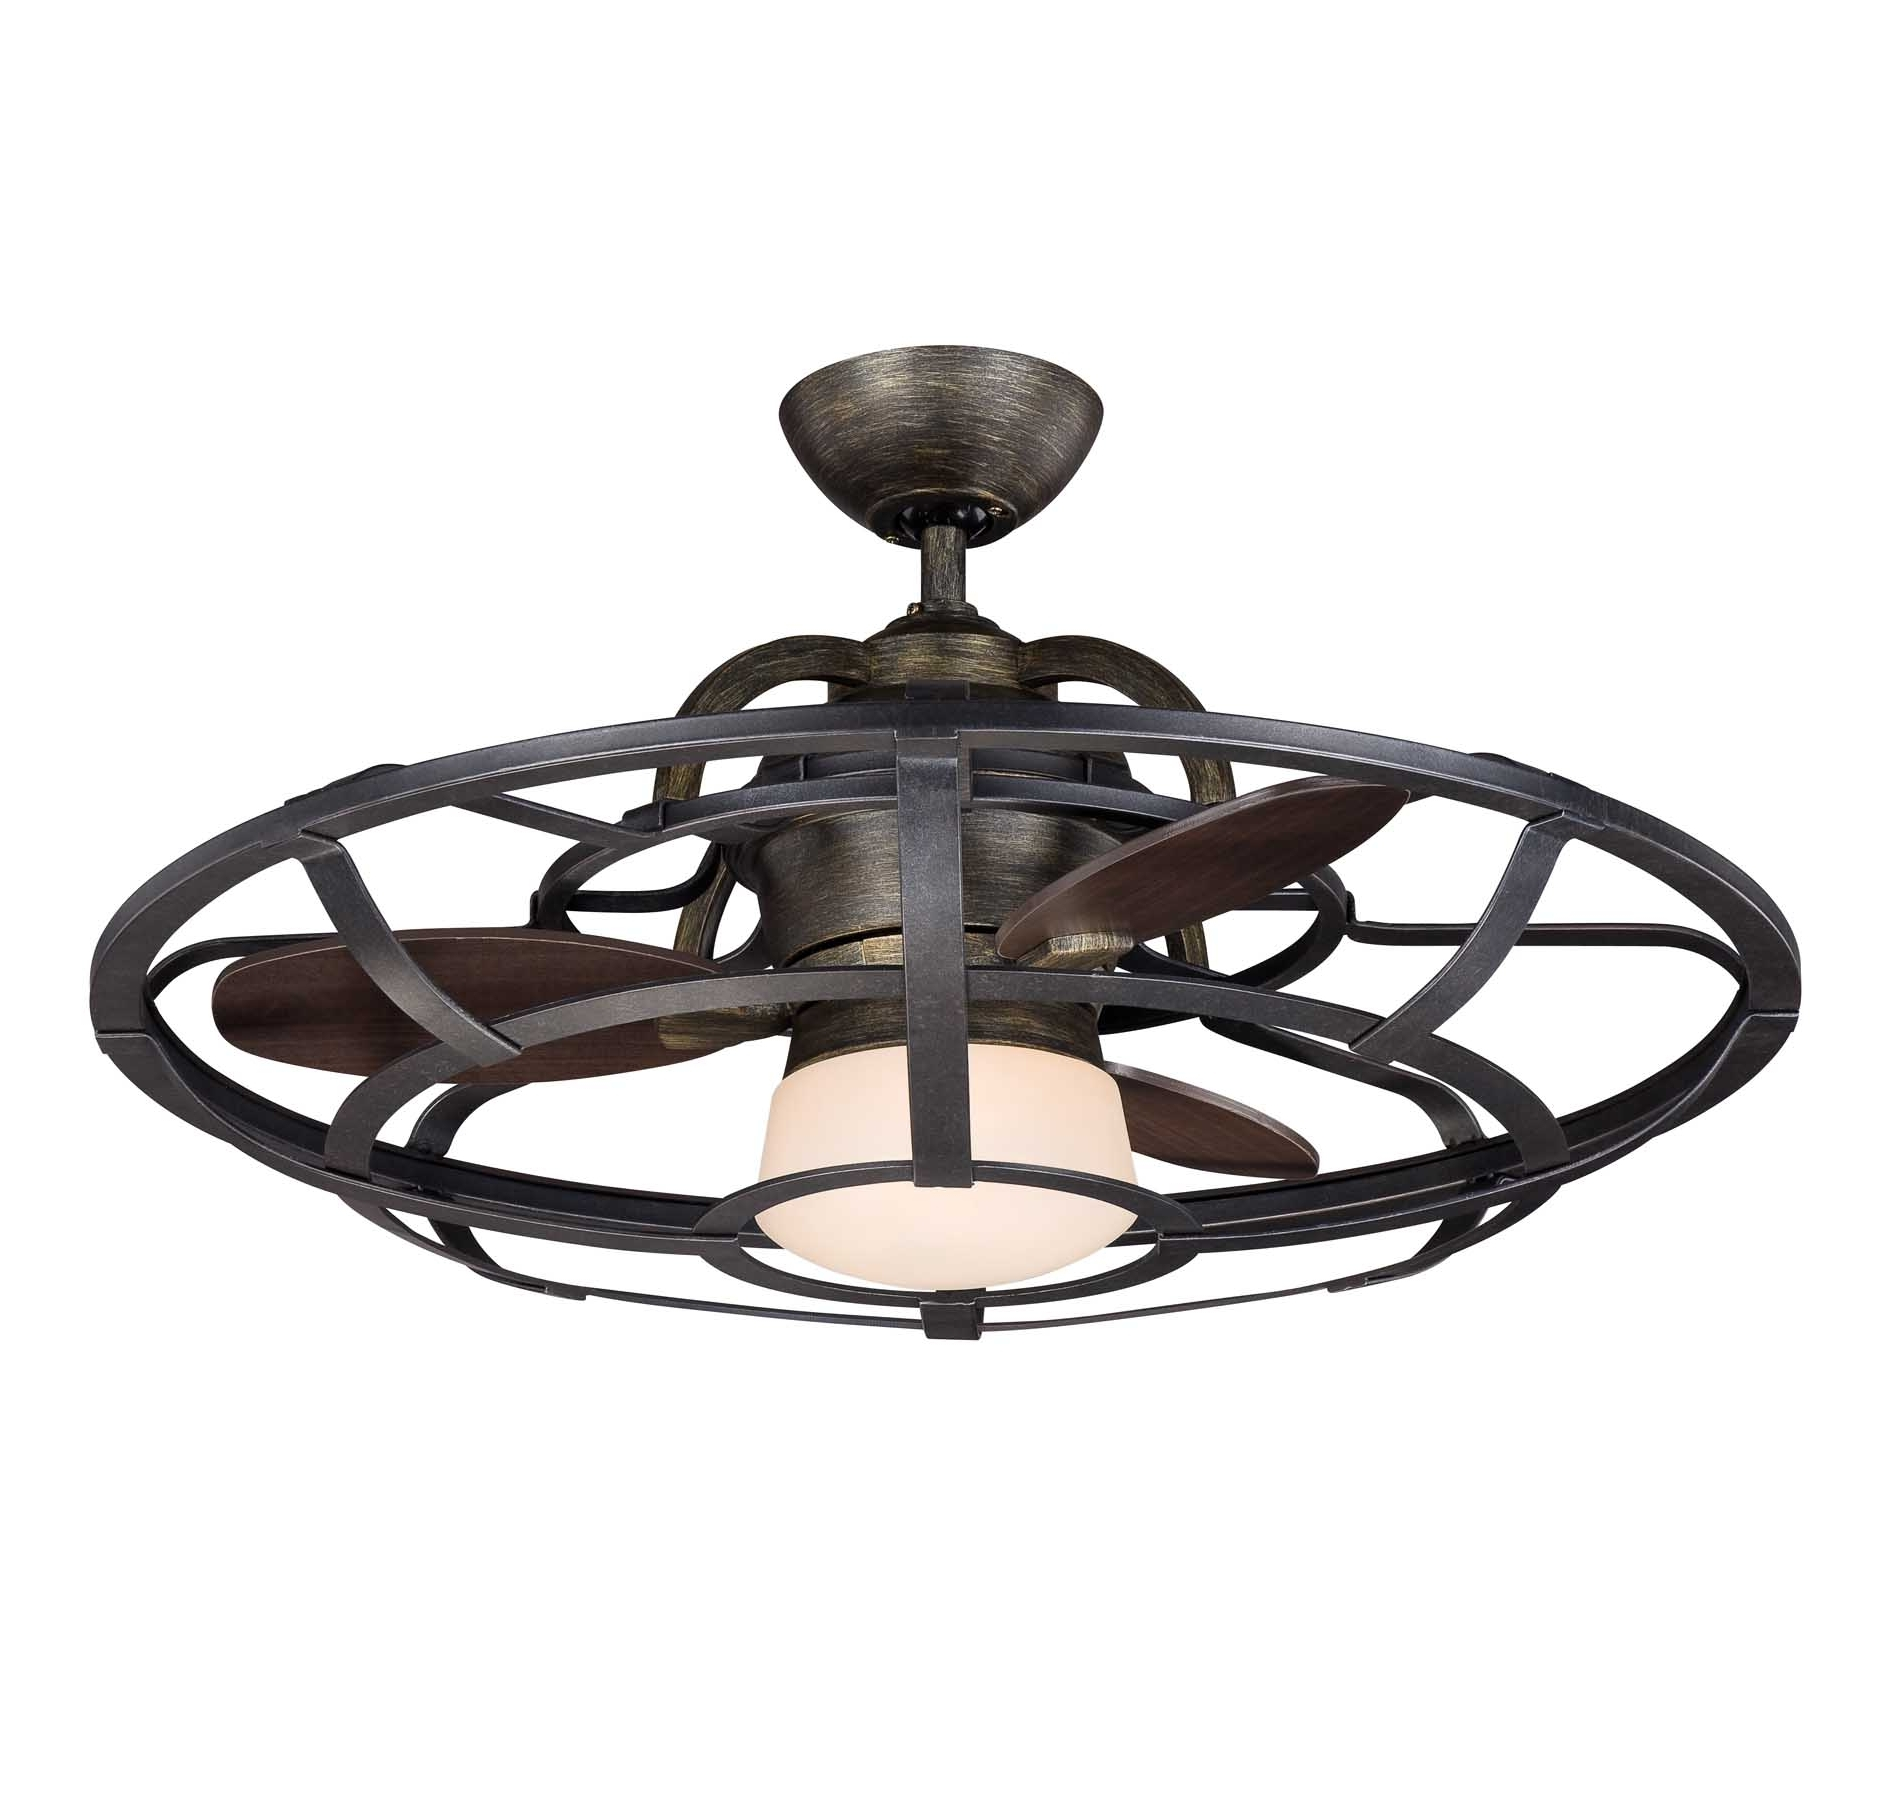 Famous Ceiling: Astounding Small Outdoor Ceiling Fan Hunter Outdoor Ceiling Pertaining To Outdoor Ceiling Fans With Cage (View 2 of 20)